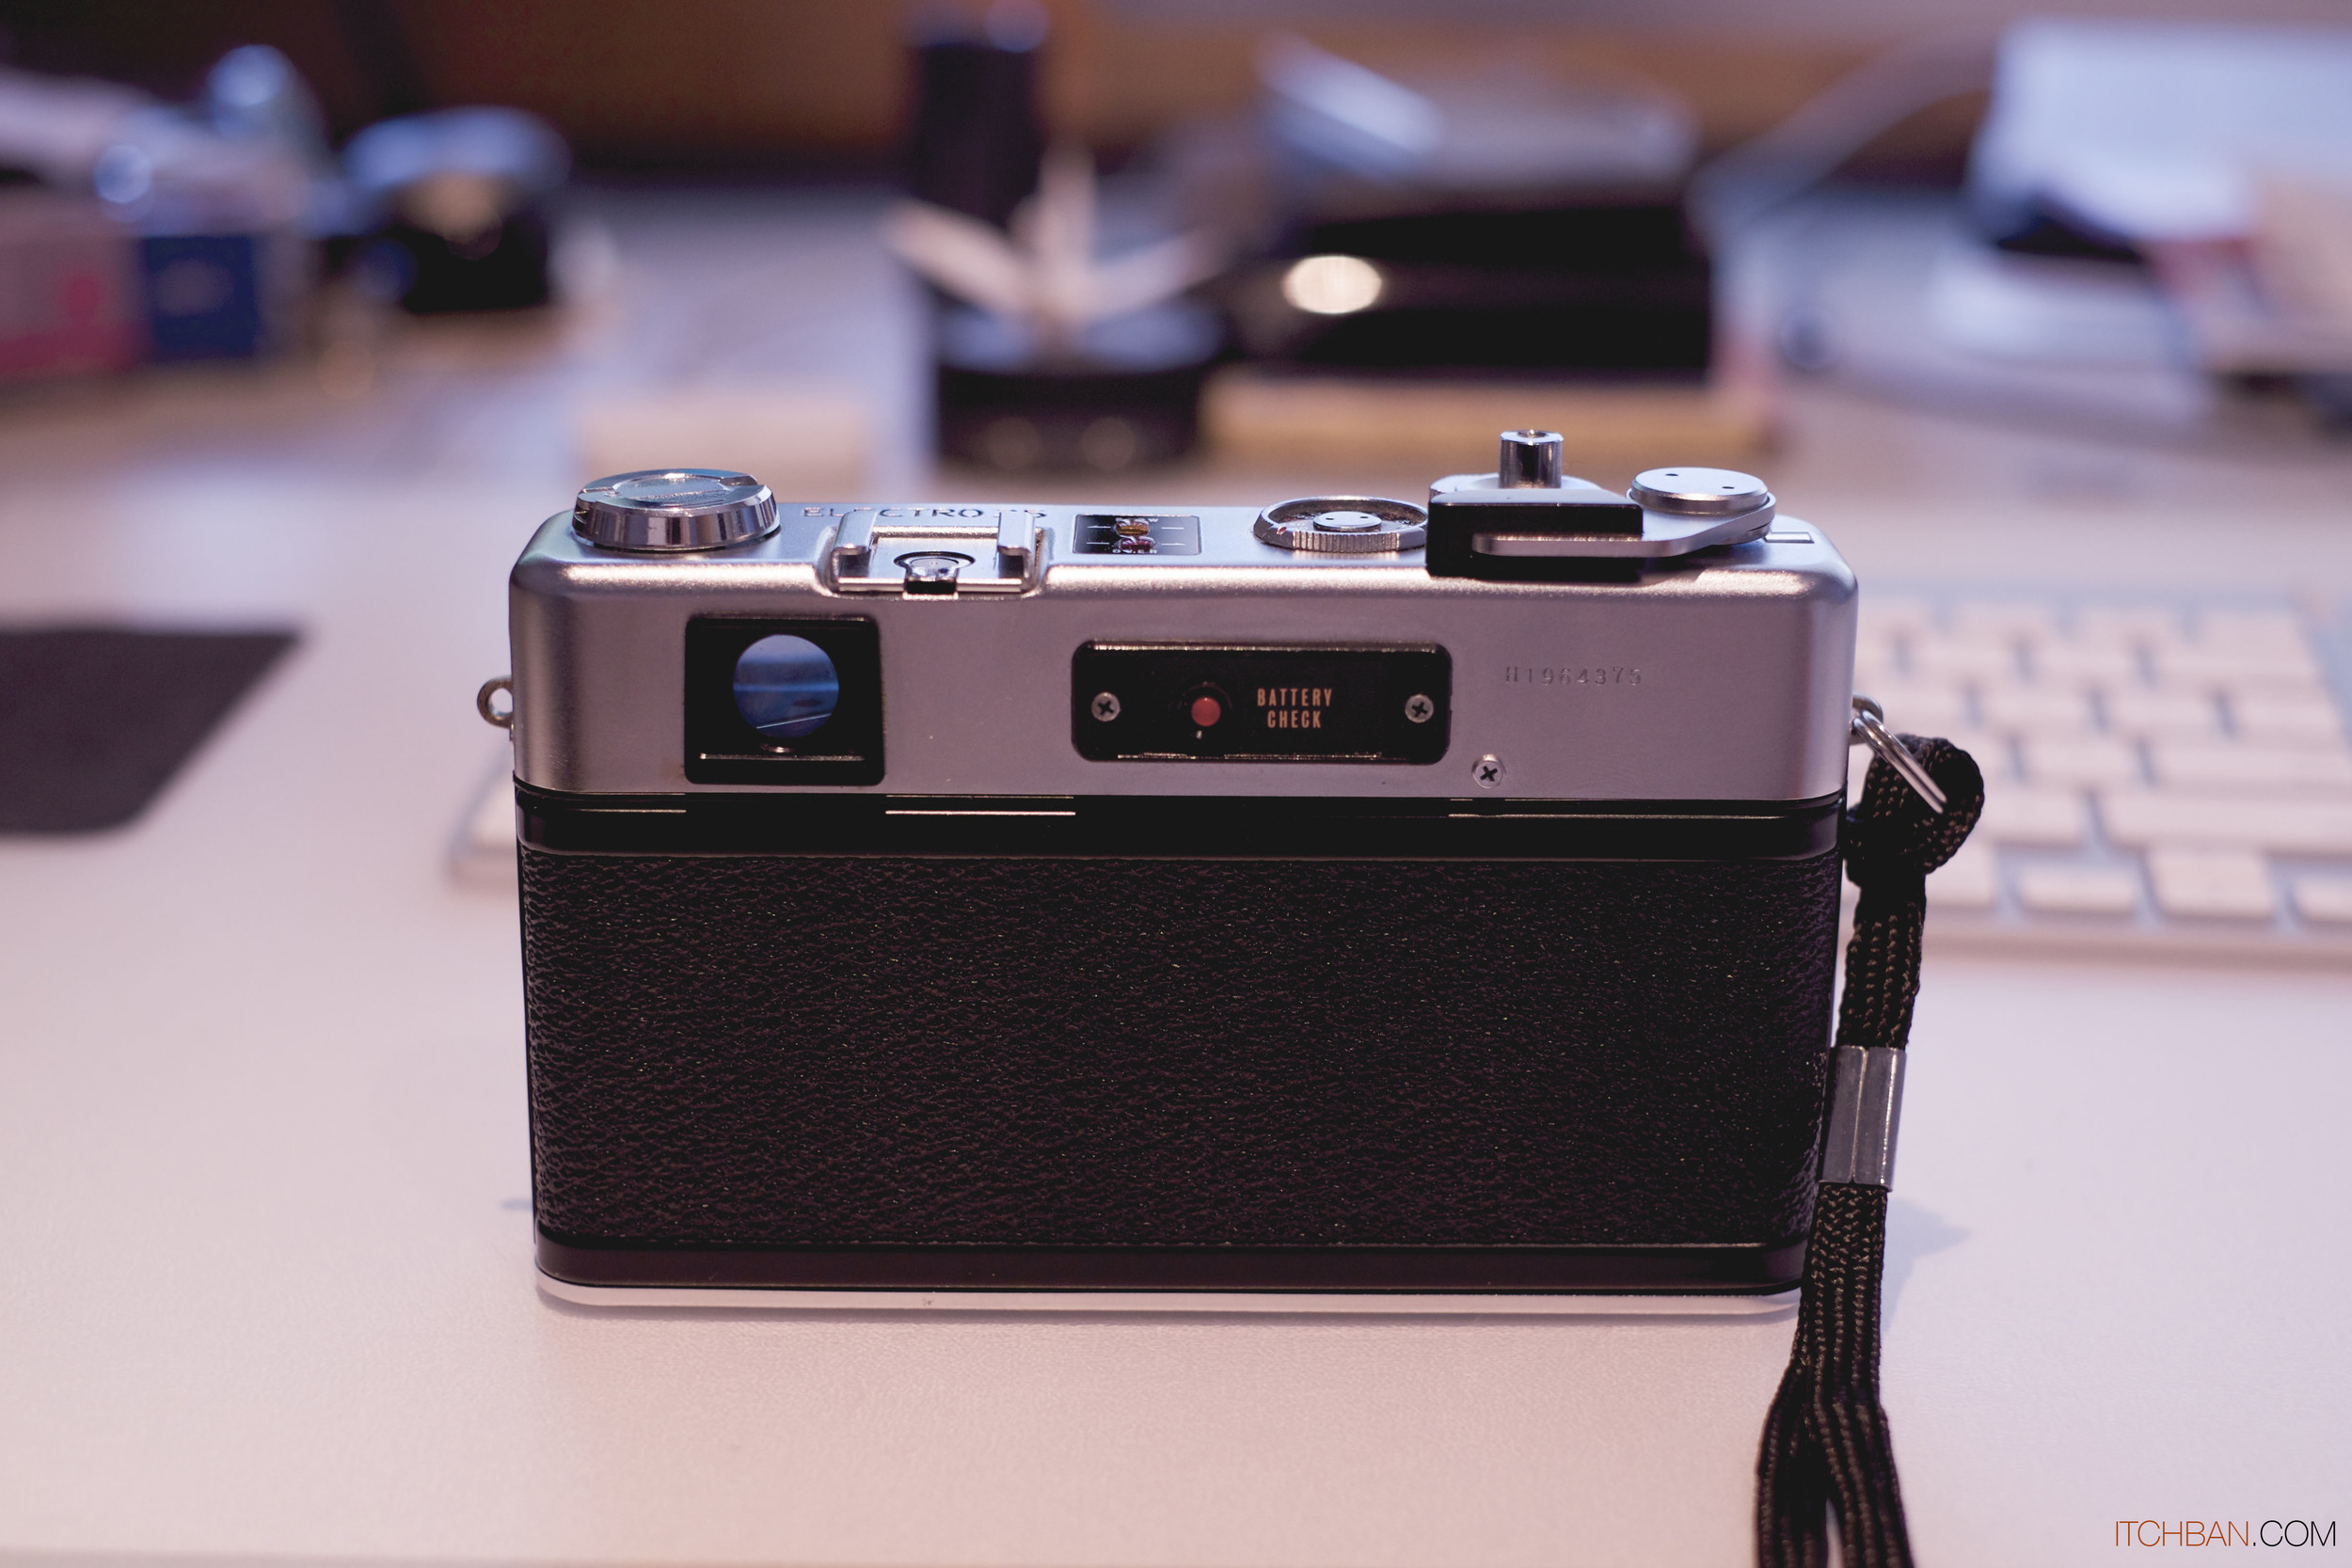 Rangefinder viewfinders are typically positioned to the top left corner of the camera body